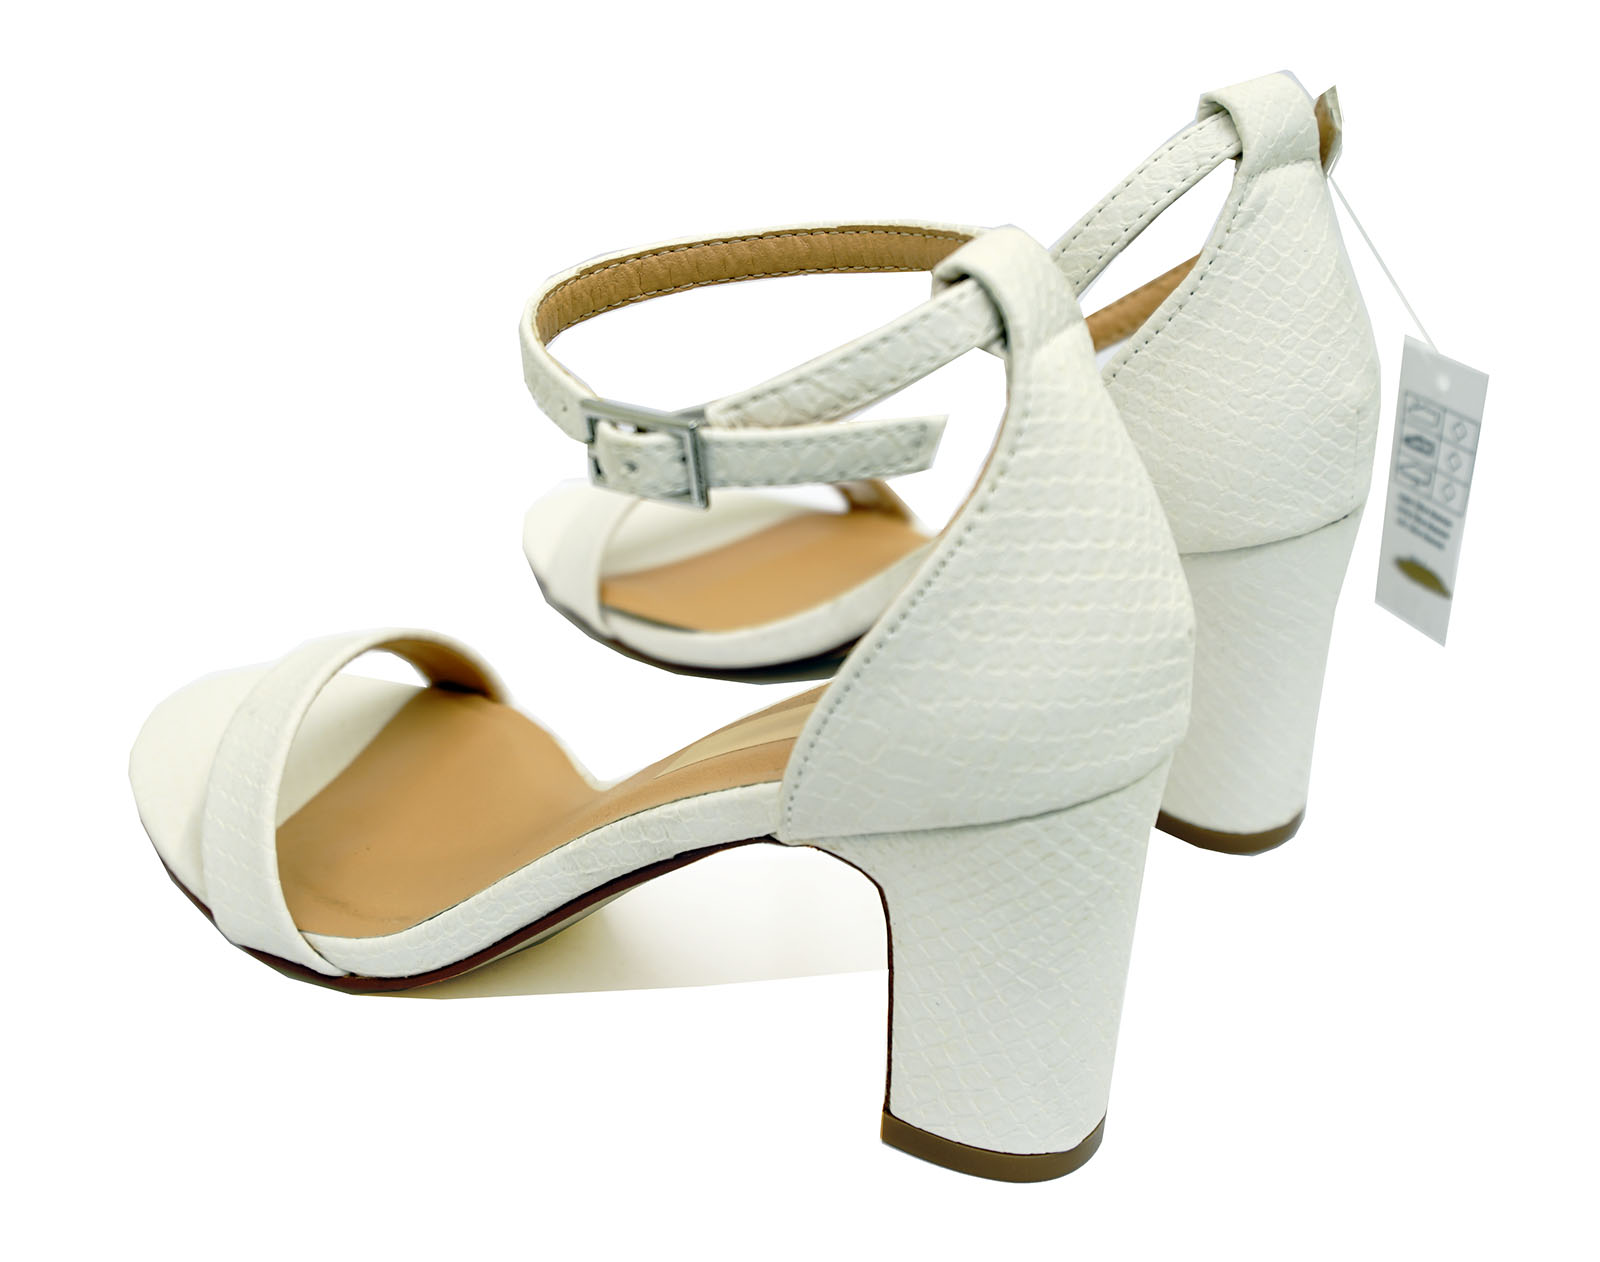 LADIES-WHITE-ANKLE-STRAP-BLOCK-HEEL-PEEPTOE-SANDALS-HOLIDAY-COMFY-SHOES-UK-3-8 thumbnail 20